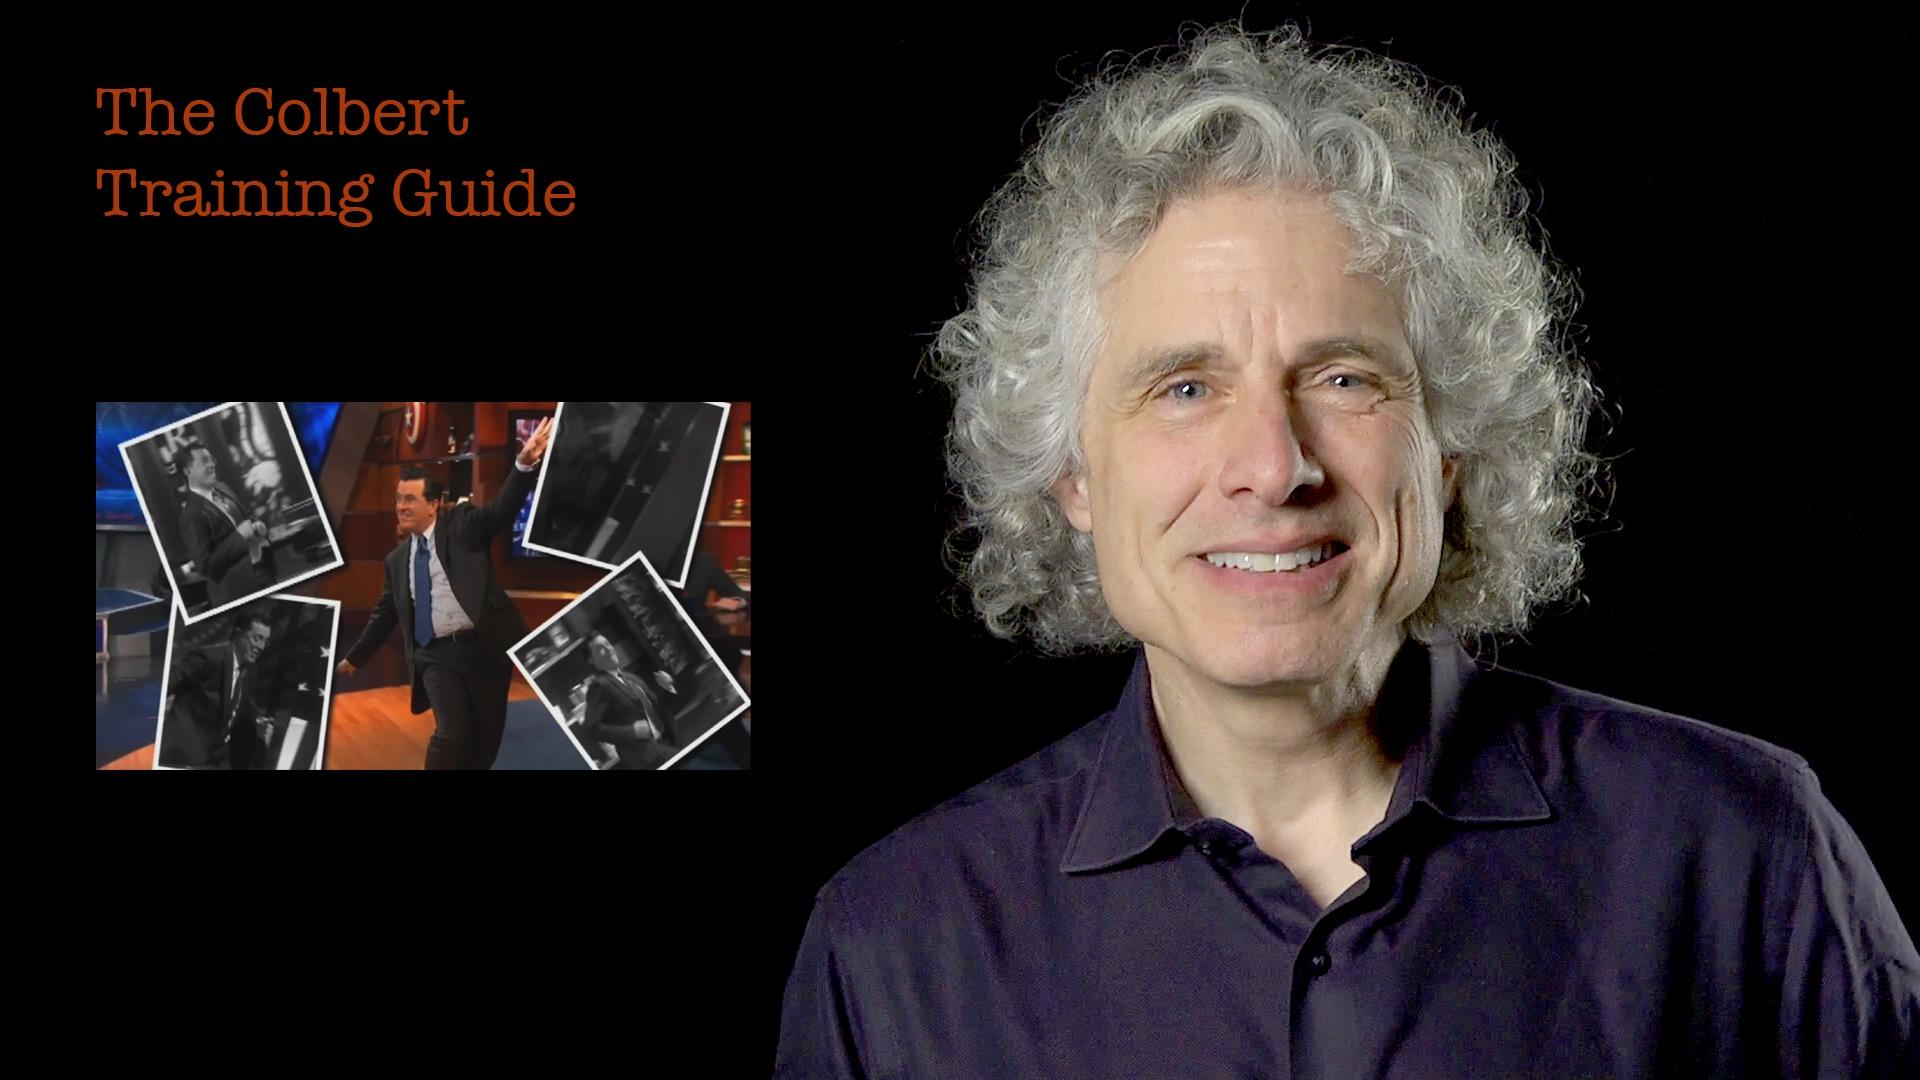 Steven Pinker: The Colbert Training Guide image